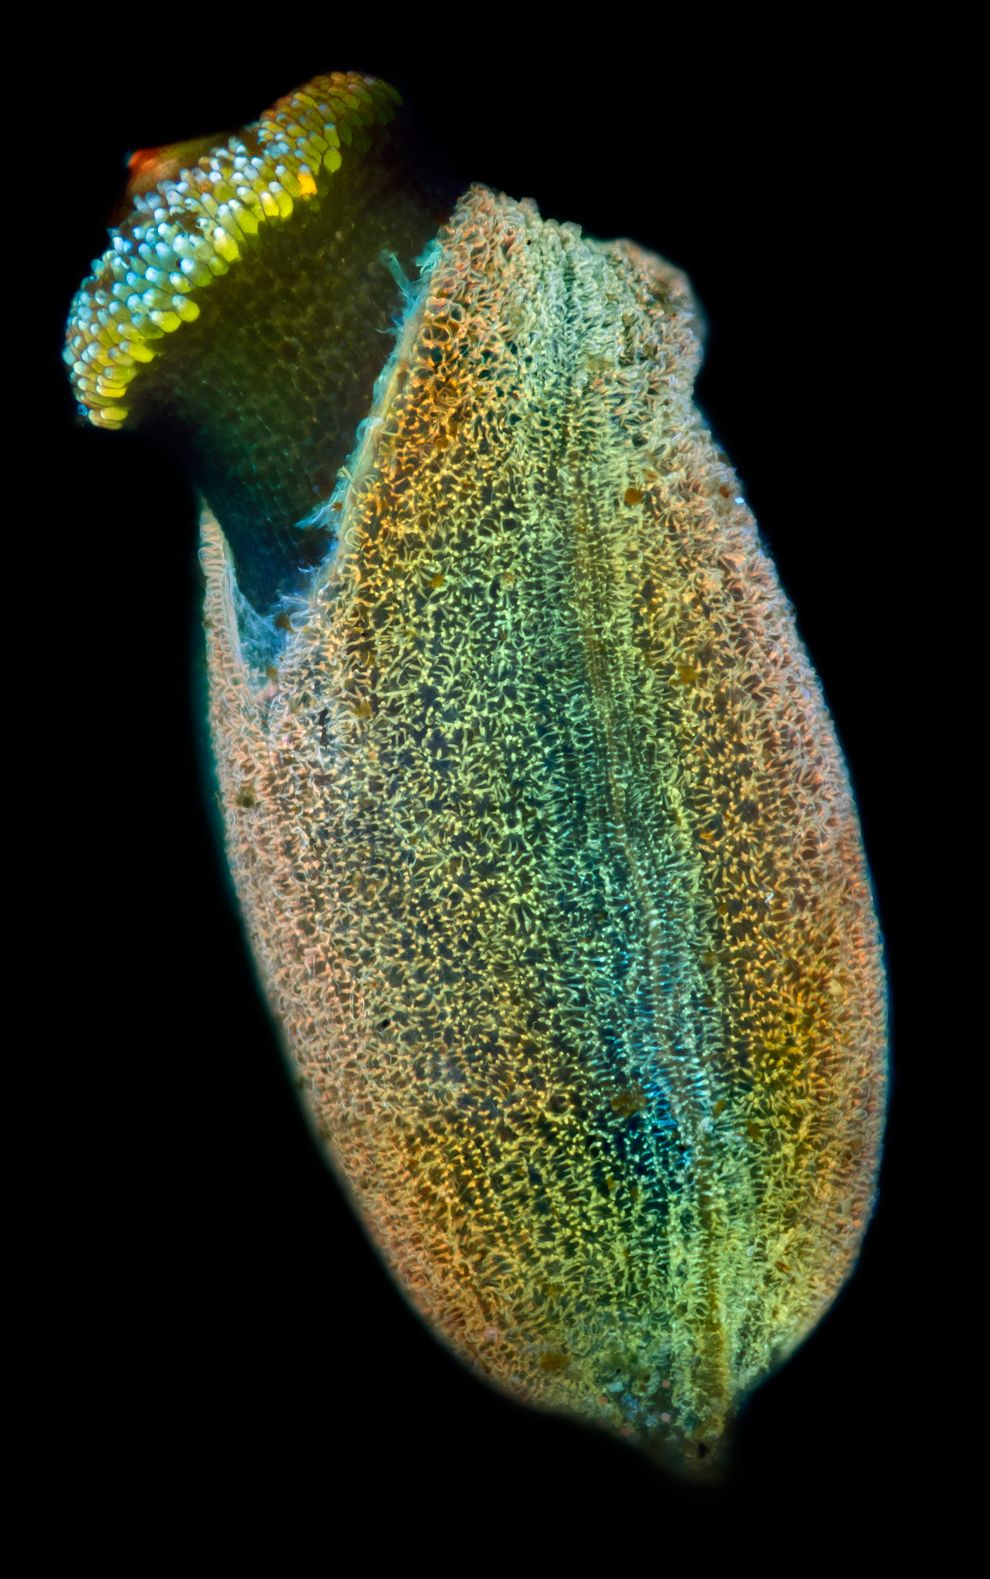 8. HONORABLE MENTION - Specimen: Plant seed from freshwater pond near Moscow, Russia. Technique: Fluorescence, 10x objective. (Daniel StoupinMoscow, Russian Federation)#